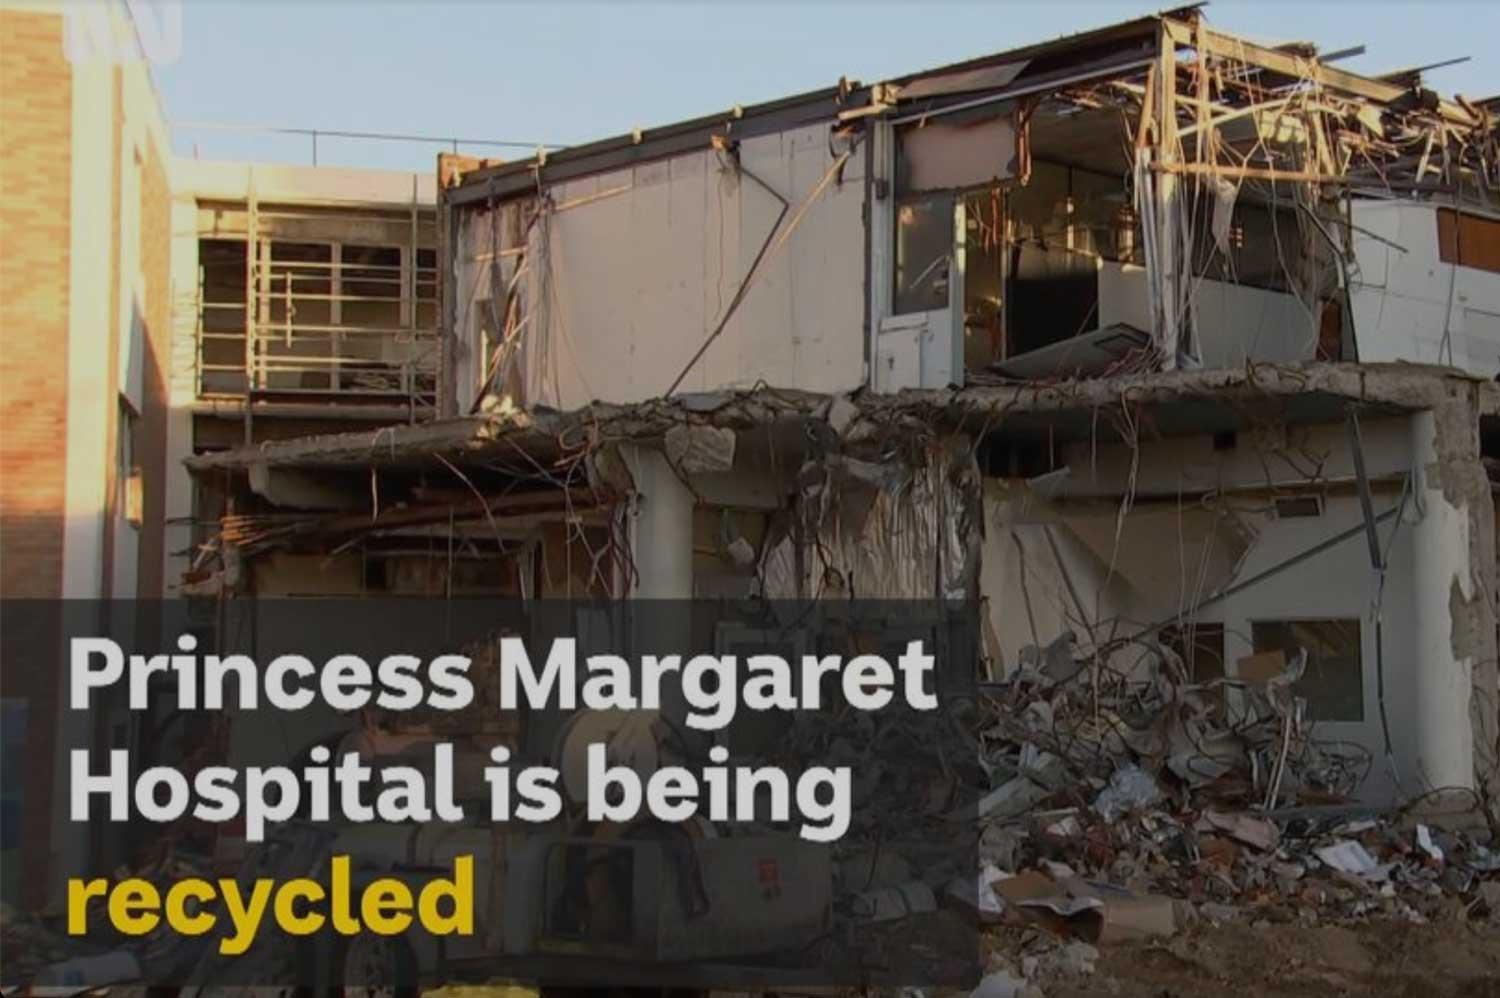 Recycling Princess Margaret Hospital: turning rubble into roads